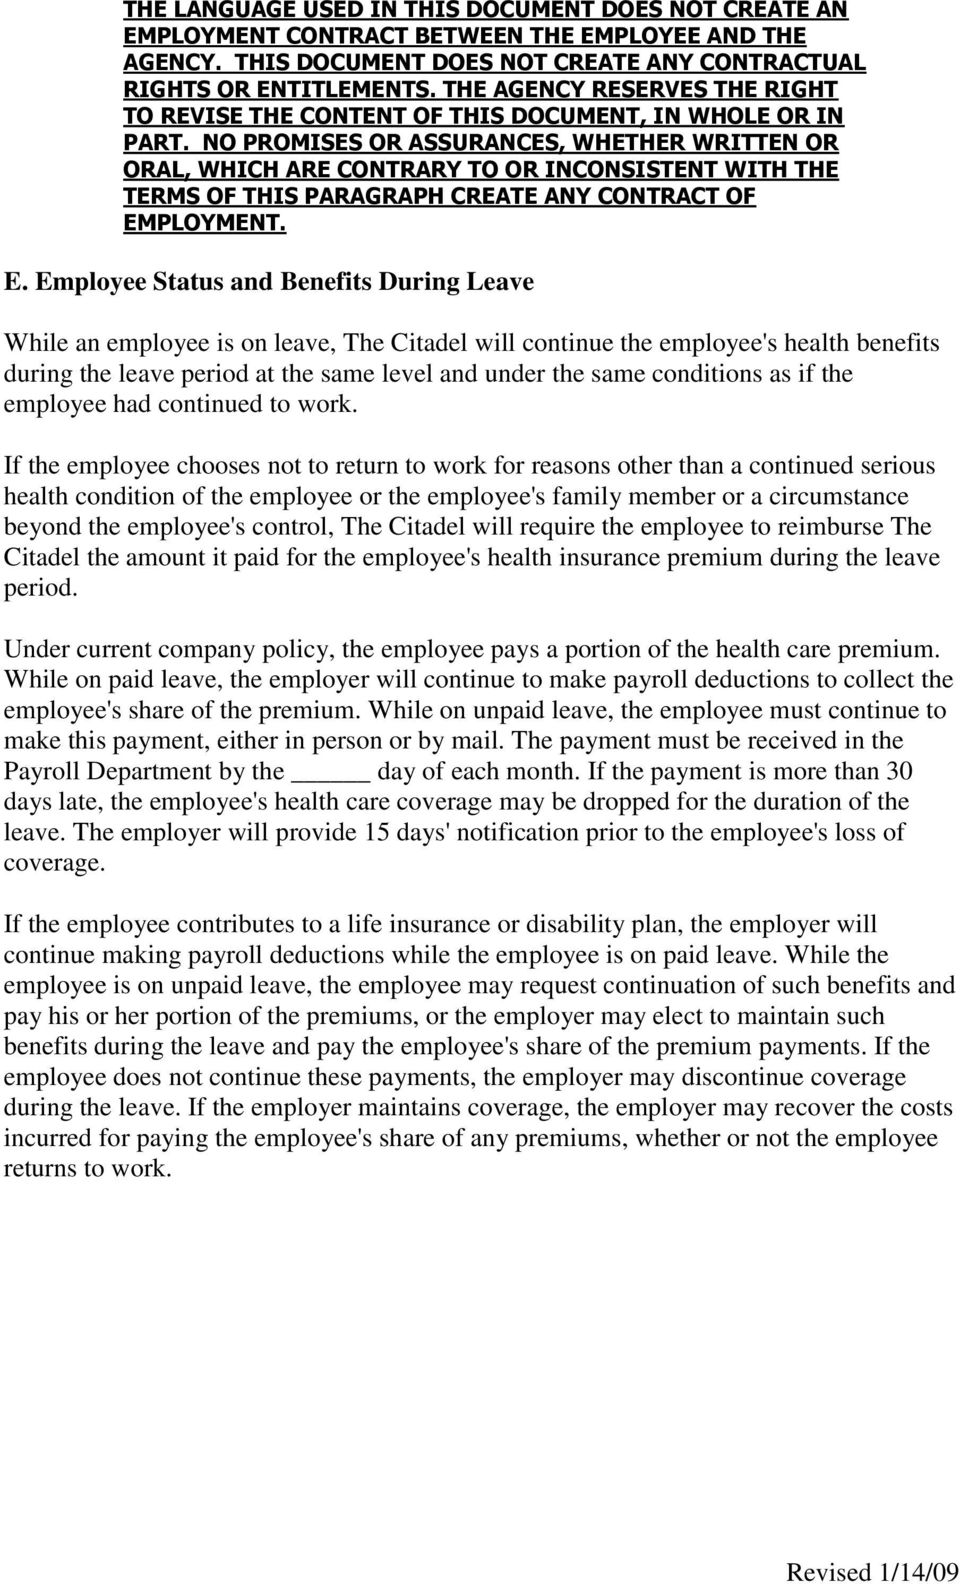 If the employee chooses not to return to work for reasons other than a continued serious health condition of the employee or the employee's family member or a circumstance beyond the employee's